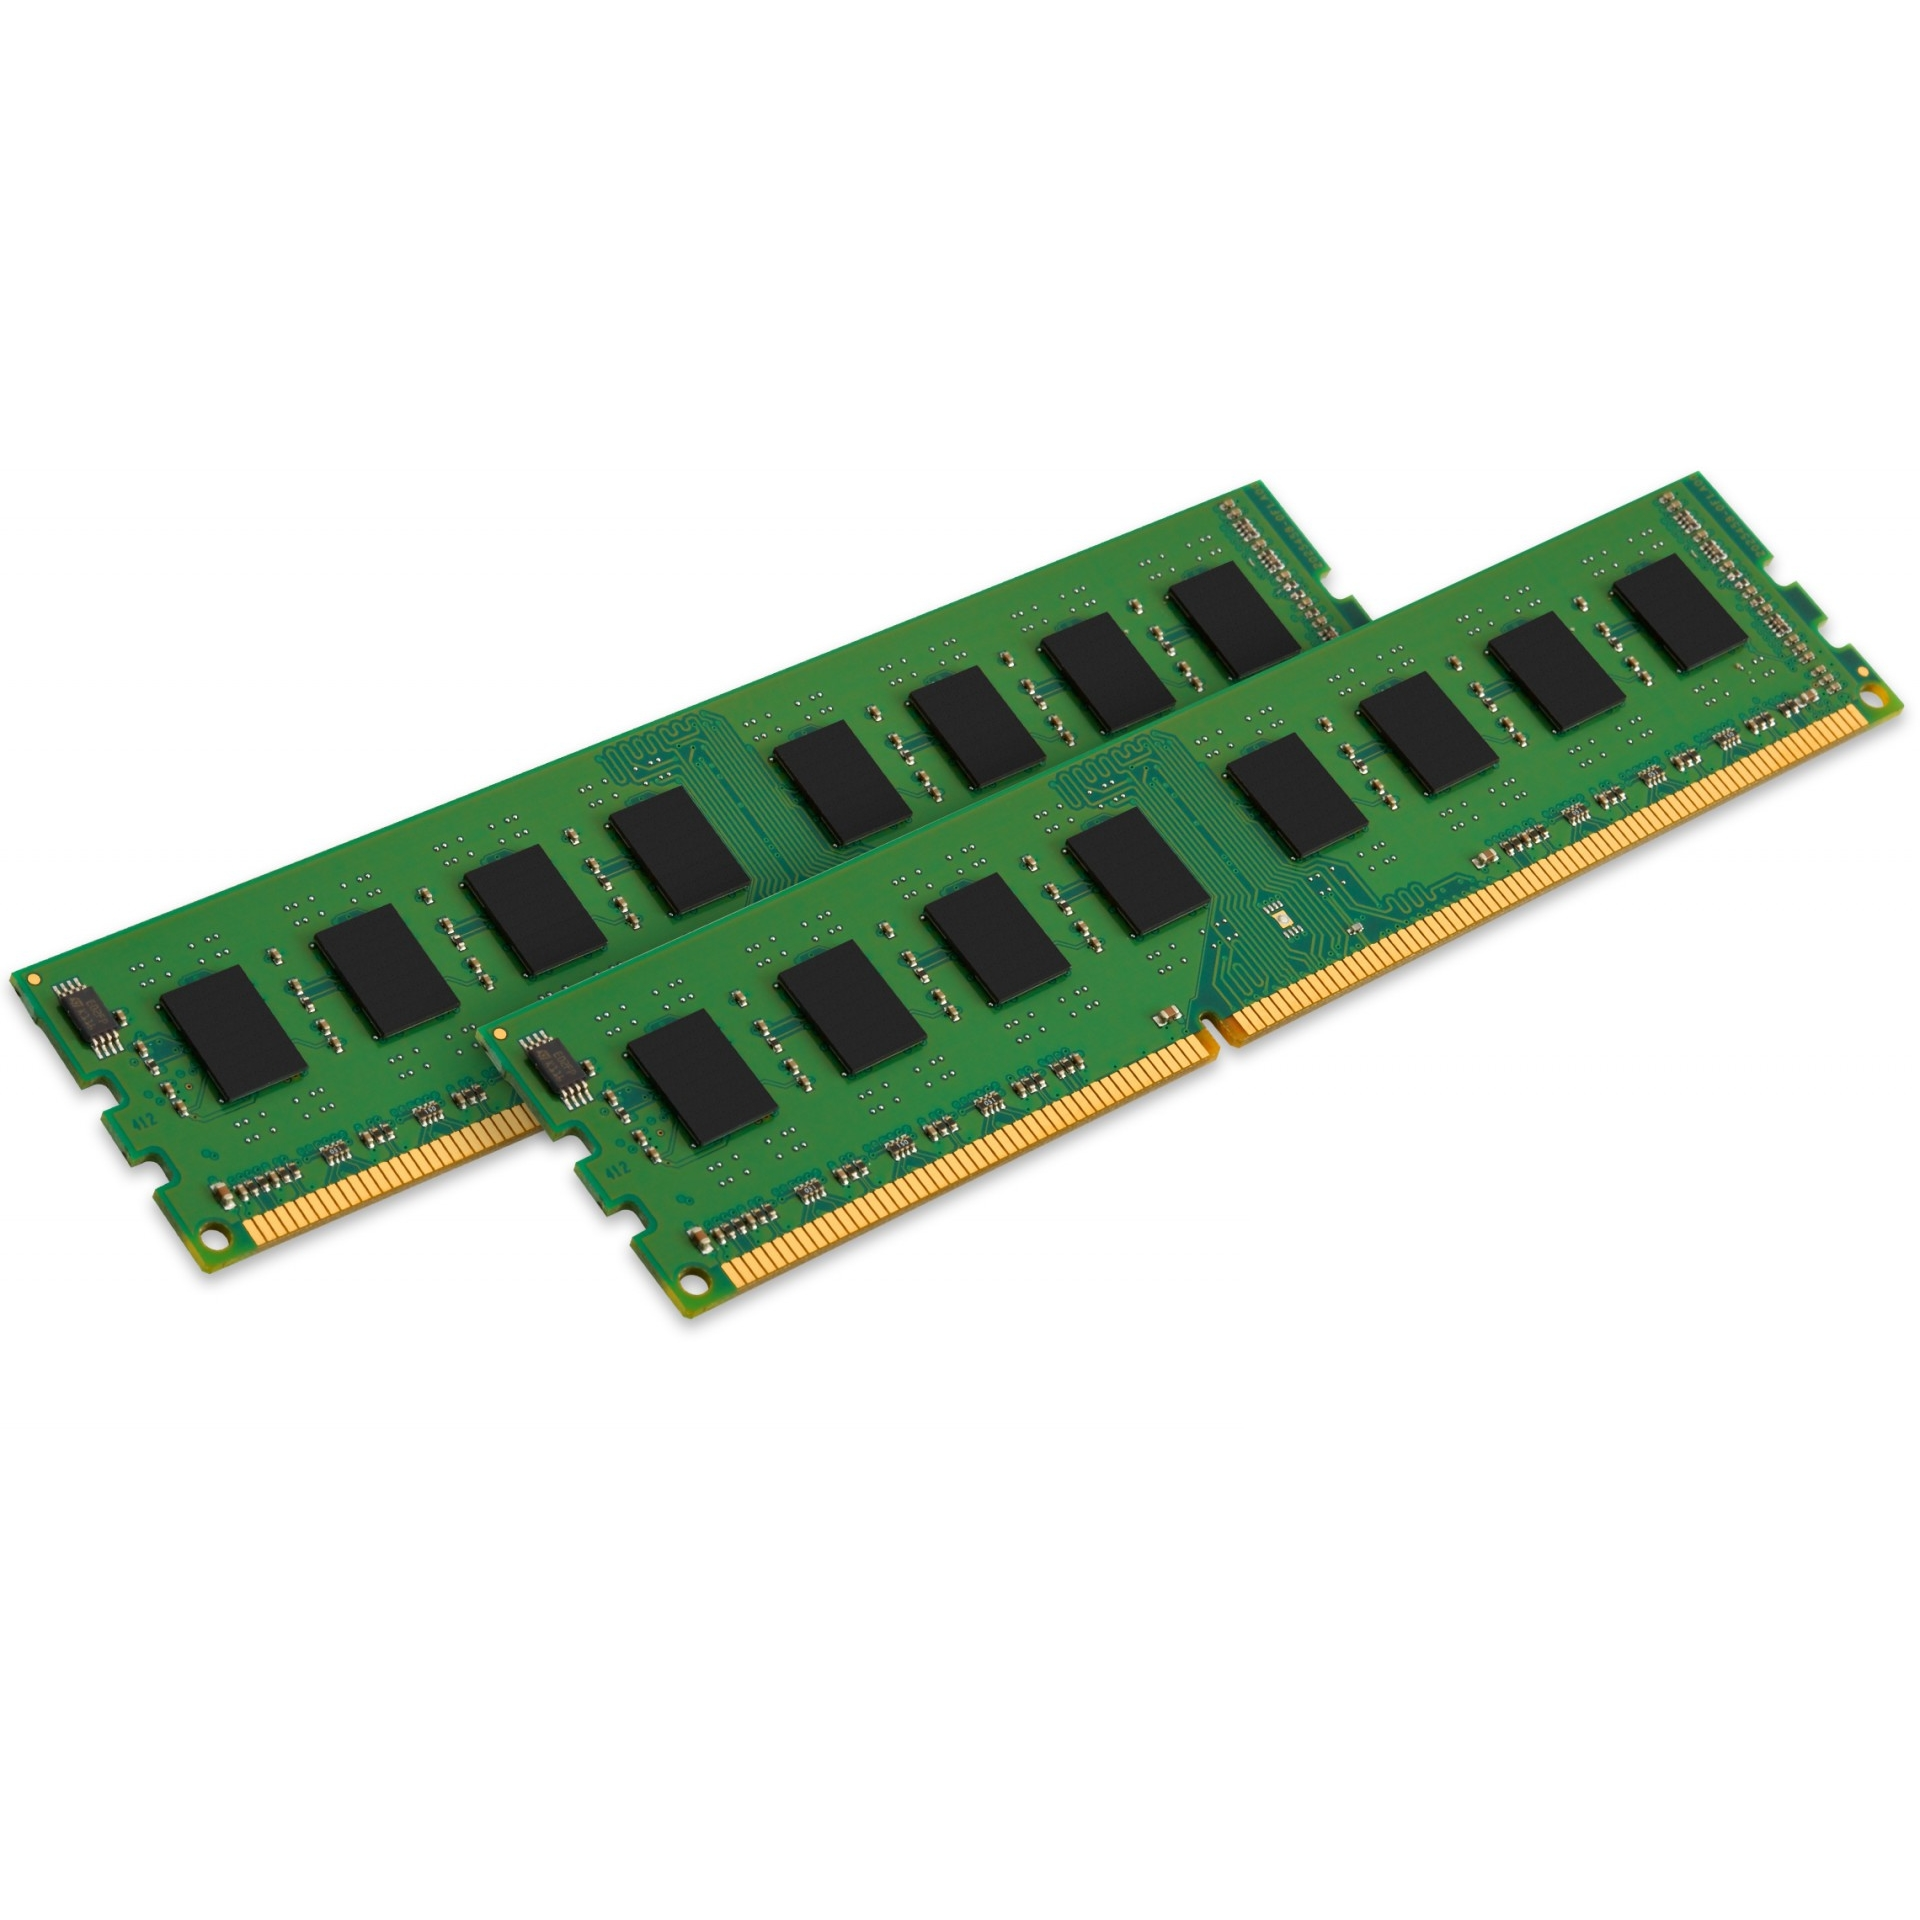 Kingston 16GB DDR3 1600MHZ Kit(2x8GB)